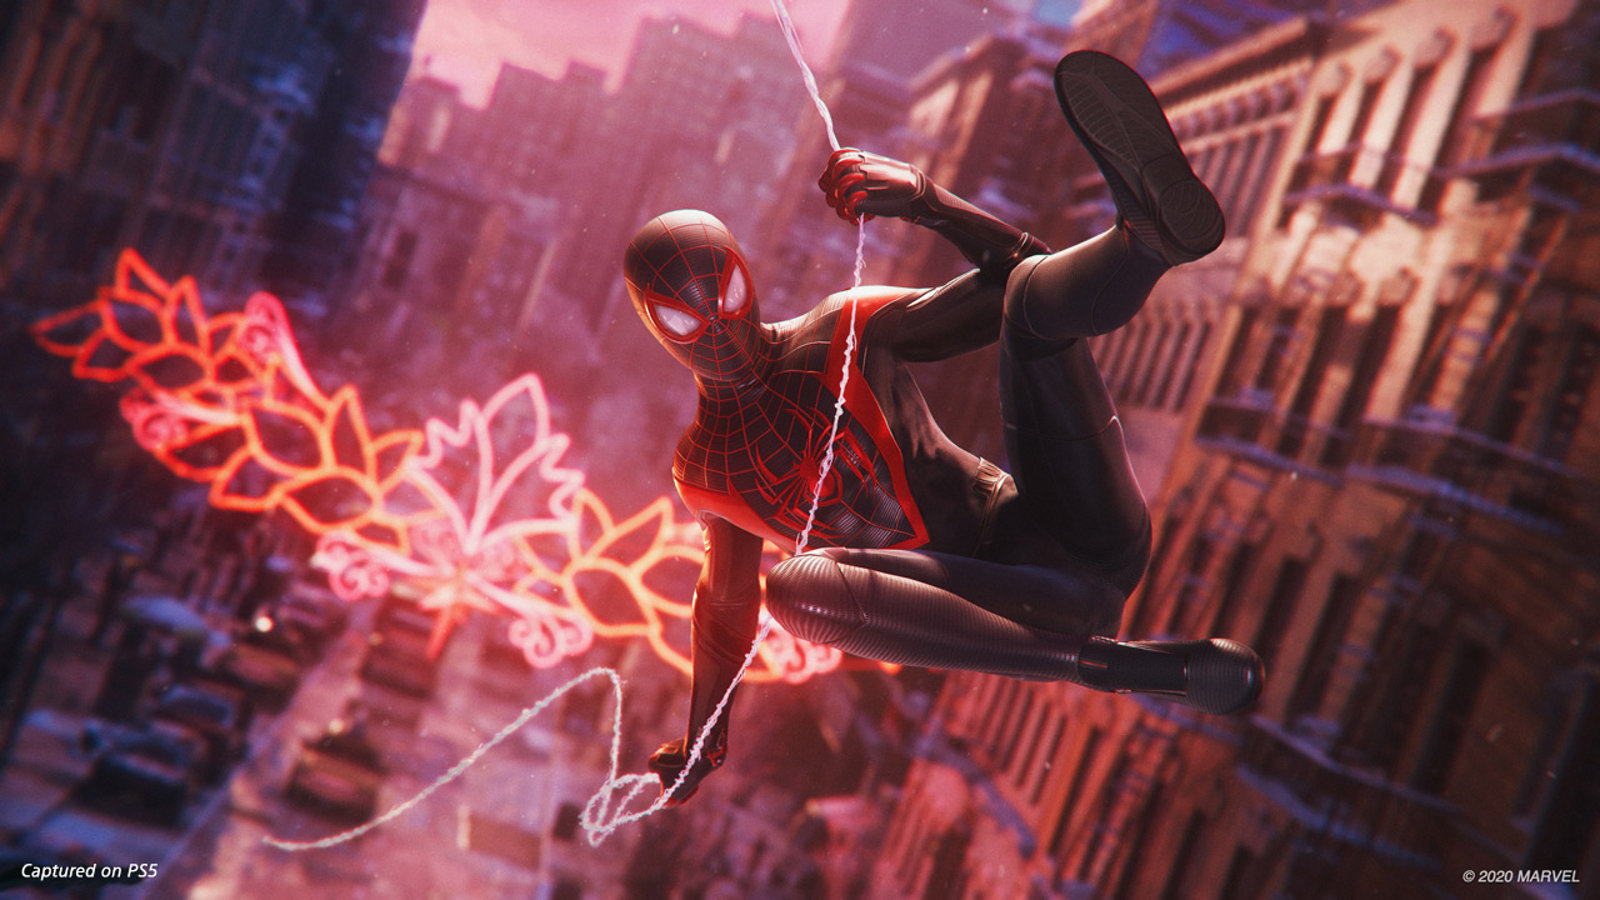 Spiderman: Miles Morales is one of the PS5's blockbuster launch games